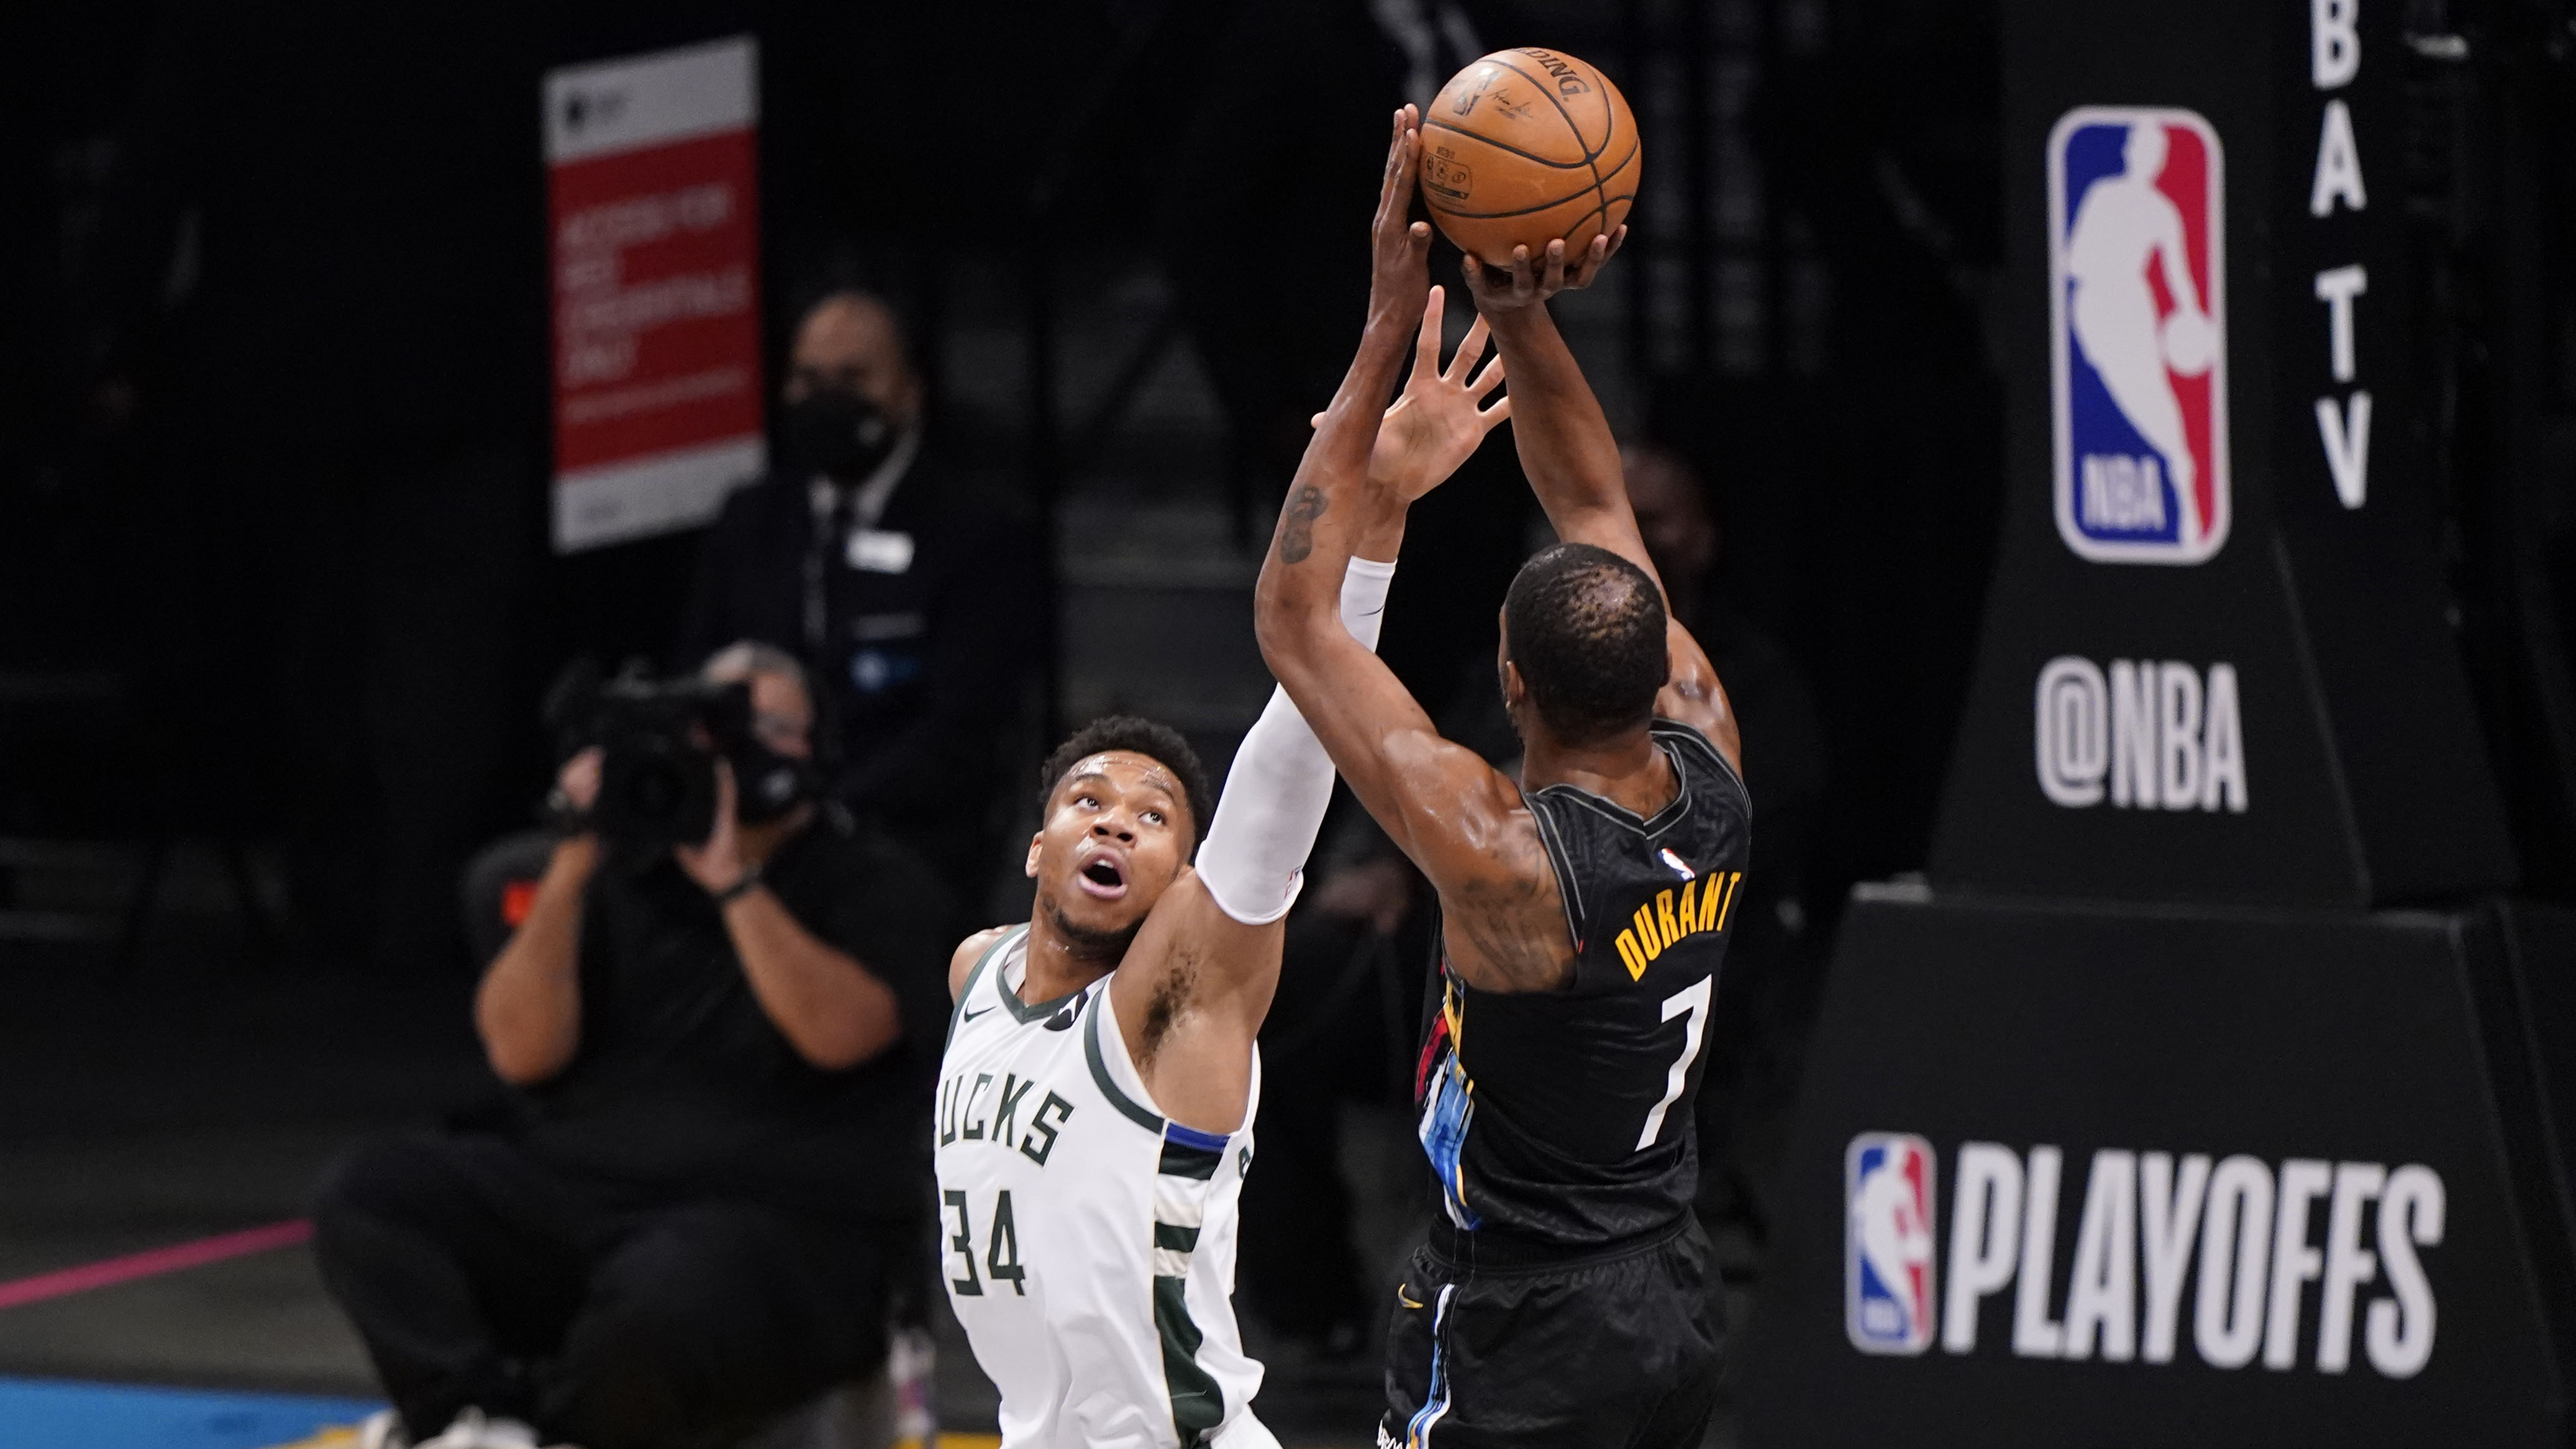 Nets' Kevin Durant slams ESPN analyst Jay Williams over Giannis Antetokounmpo story: 'This is a f—n' lie' – Fox News